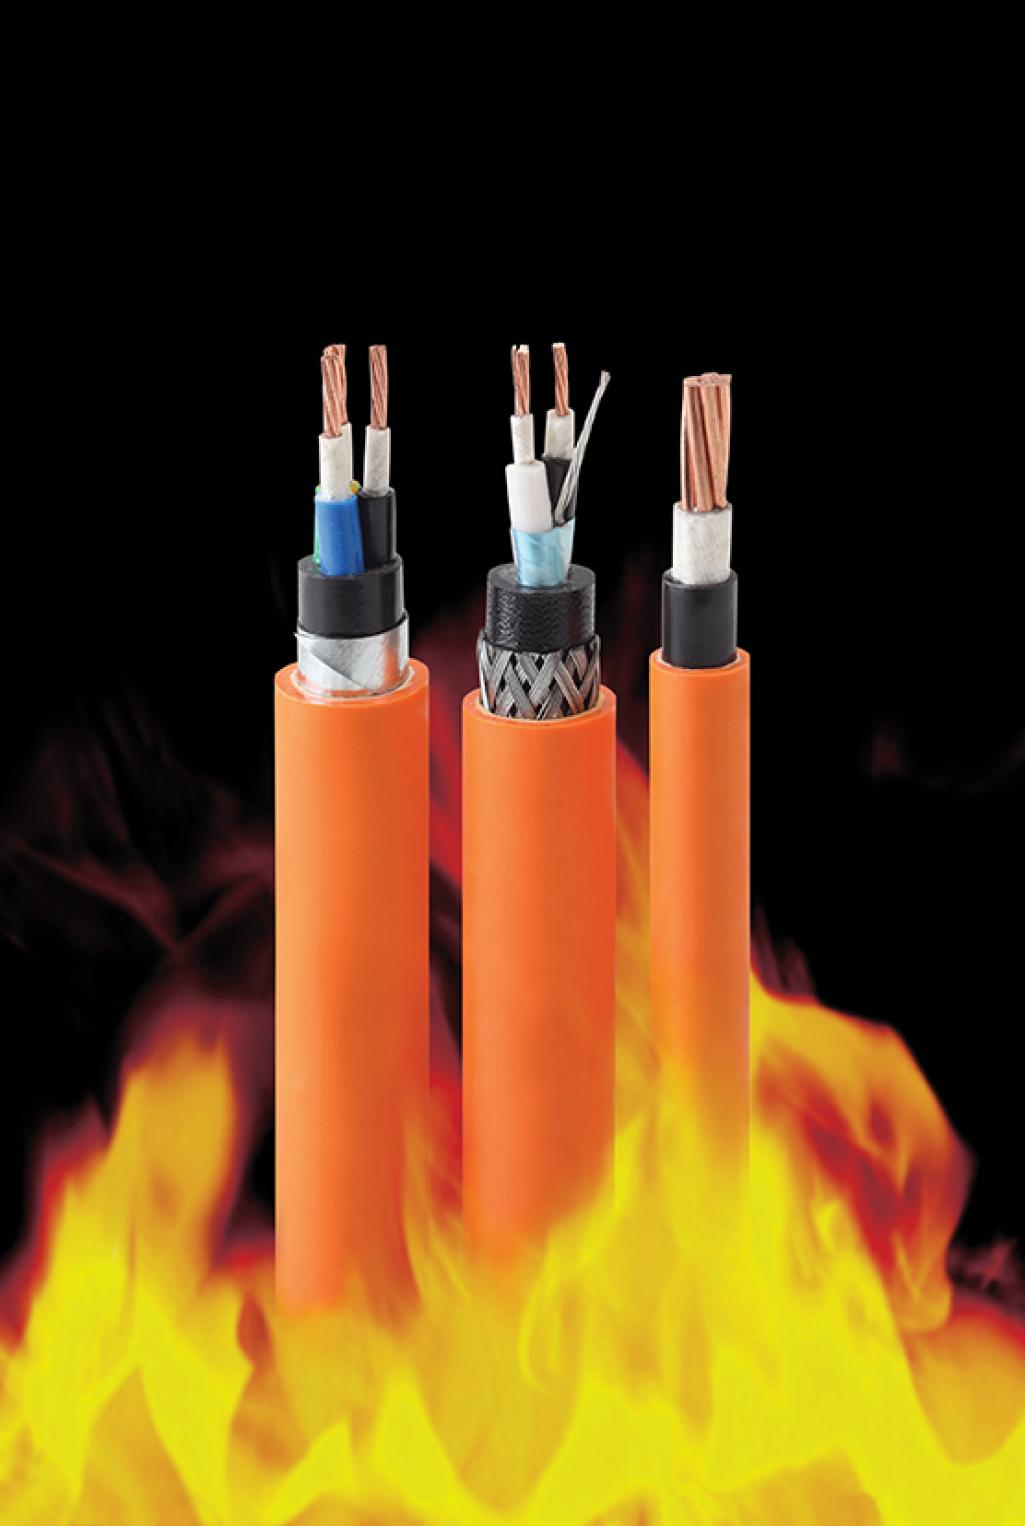 Where Are We Now Two Hour Fire Rated Cable Electrical Contractor Ul Listed Wiring Conduit